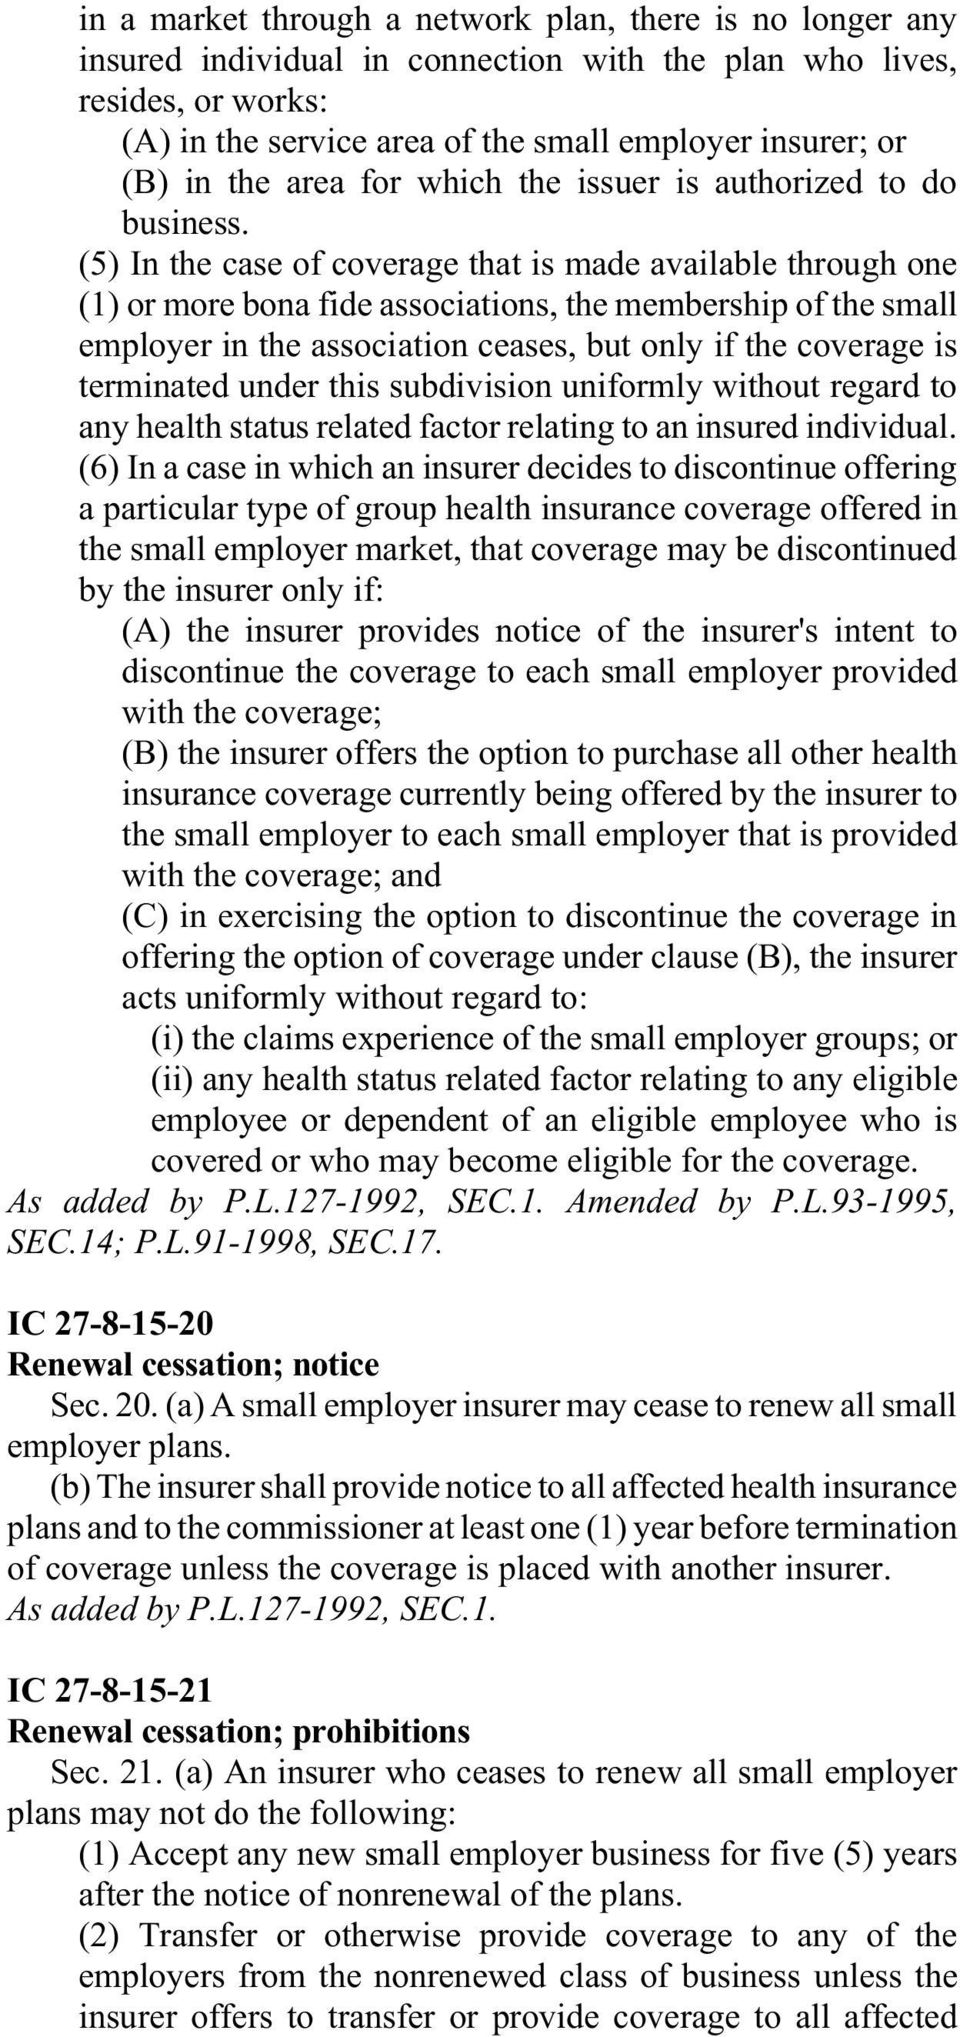 (5) In the case of coverage that is made available through one (1) or more bona fide associations, the membership of the small employer in the association ceases, but only if the coverage is